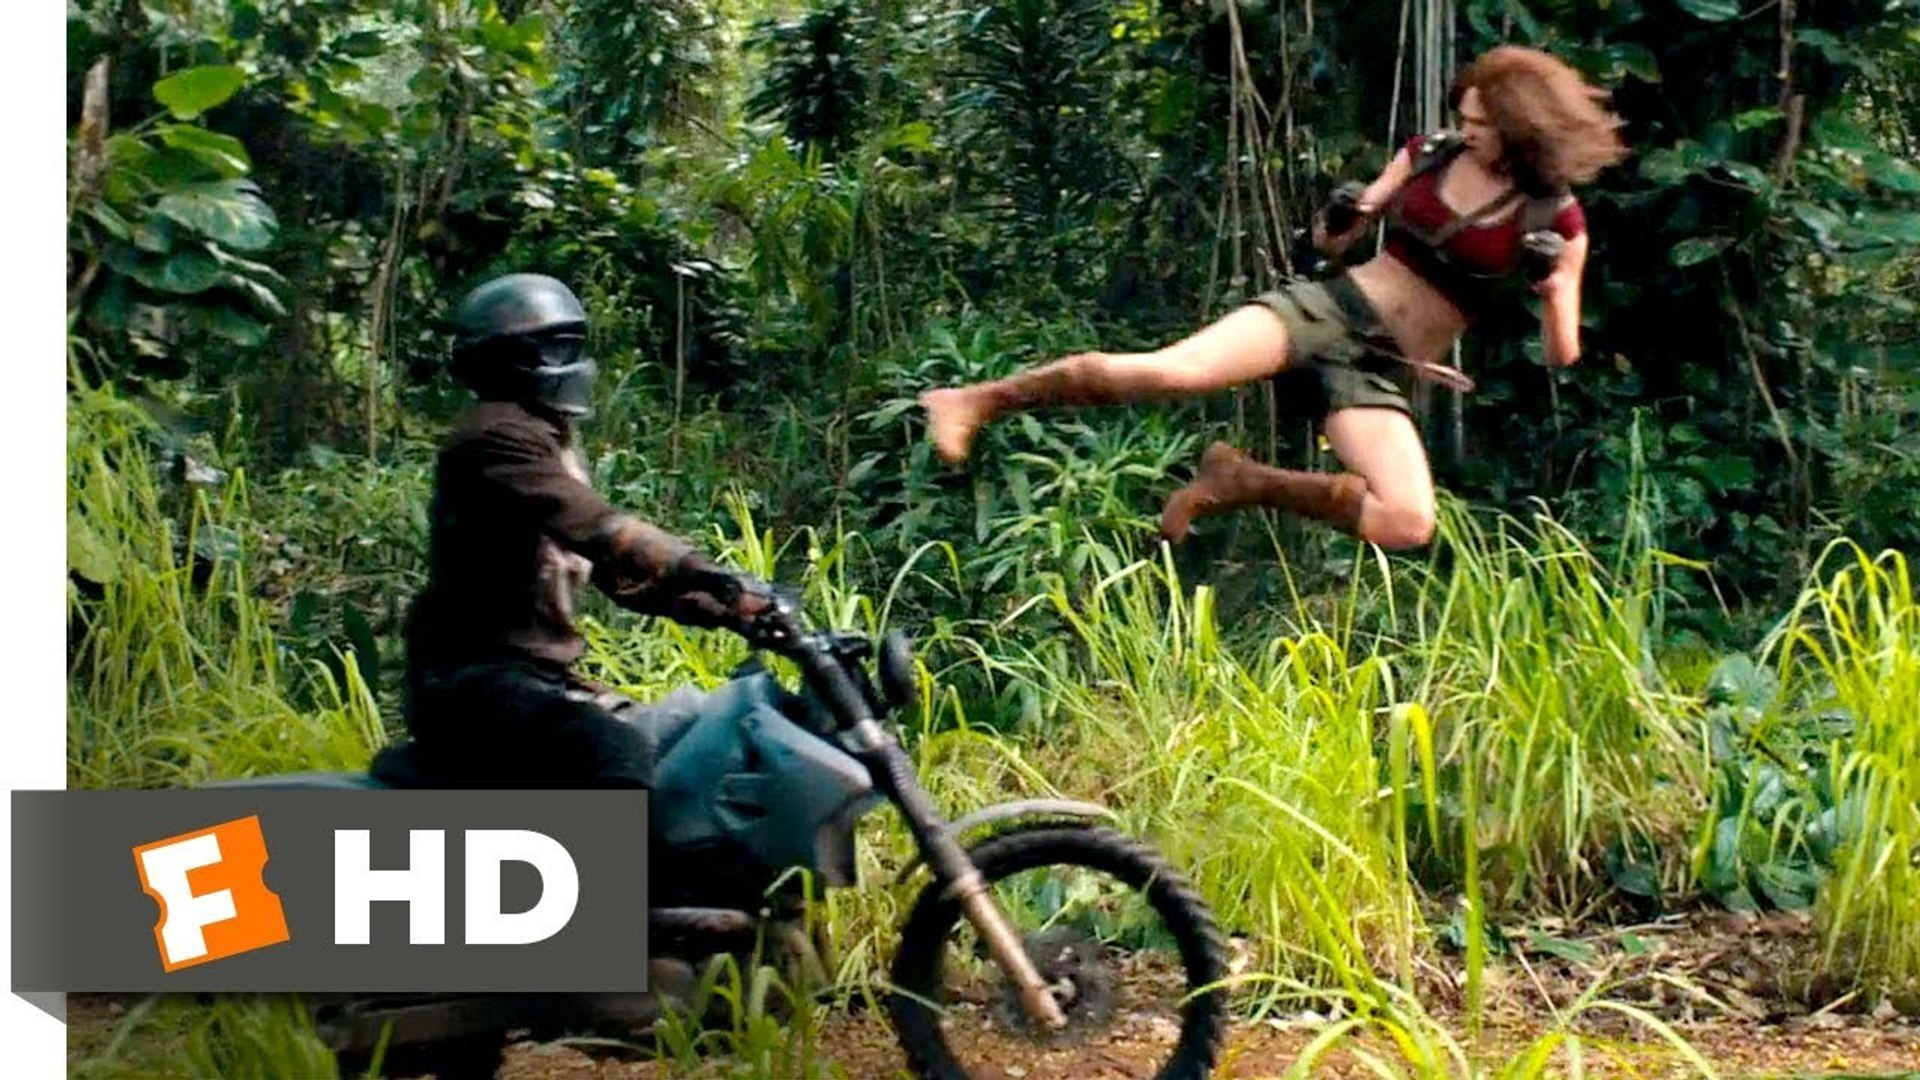 Jumanji 2 - Welcome to the Jungle (2017) - Motorcycle Assault Scene (2-10) - Hollywood Movies Englis